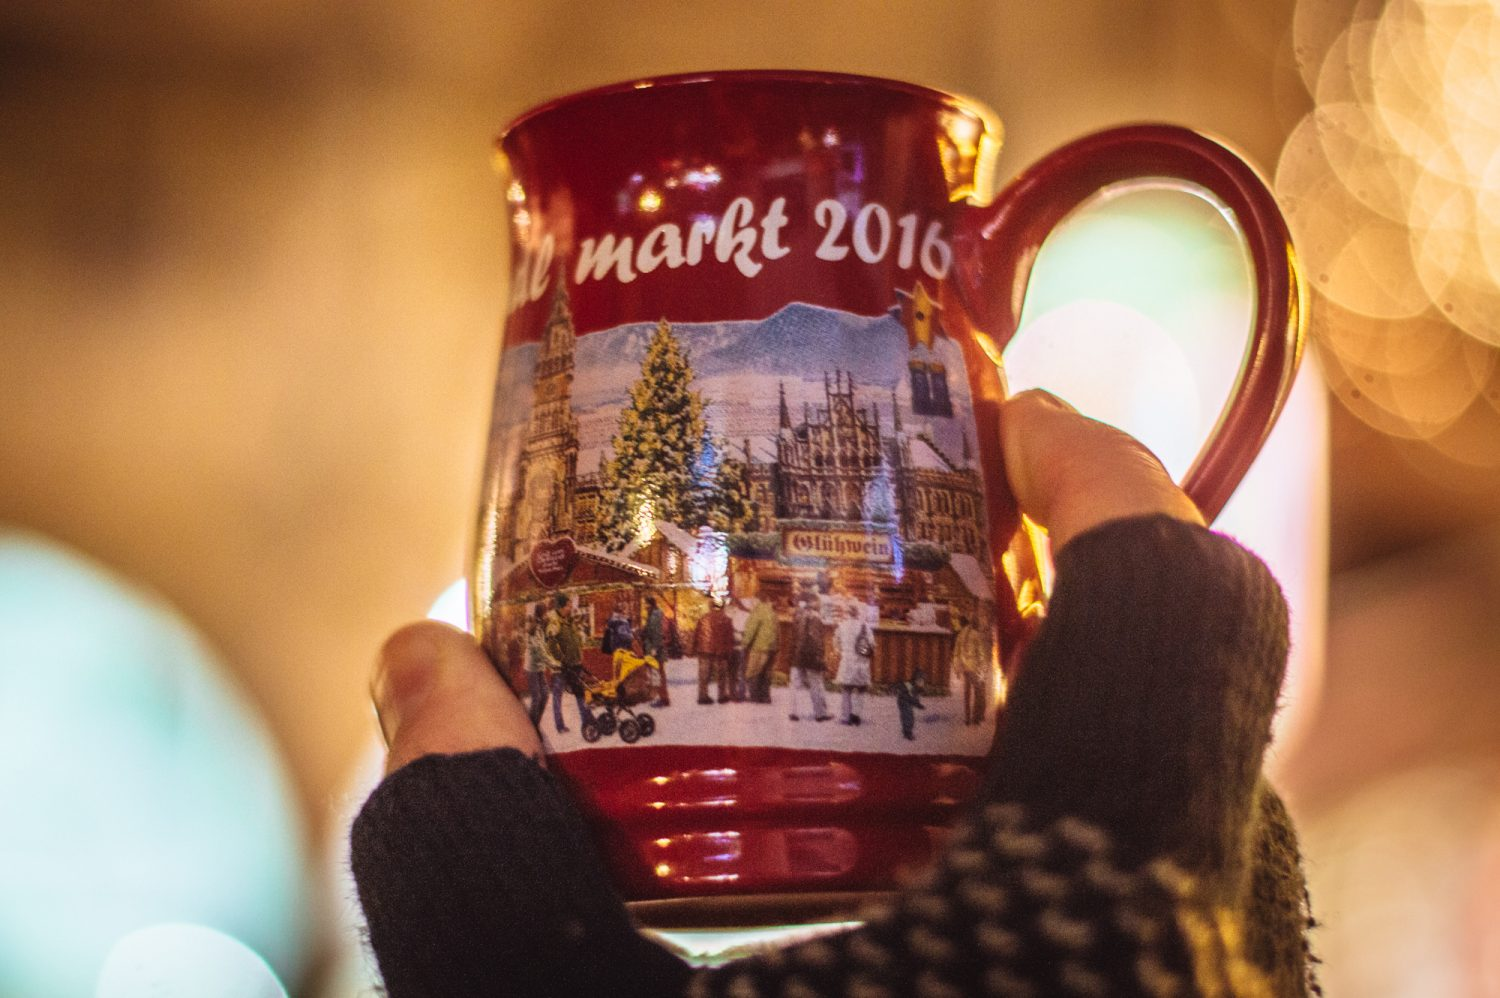 THE best and most thorough guide out there for Munich Christmas Markets! Don't miss this guide if you're planning on visiting Munich, Germany for Christmas Markets. Includes the best markets to visit, what to do, what to eat and more. #Munich #Germany #Christmas #ChristmasMarkets